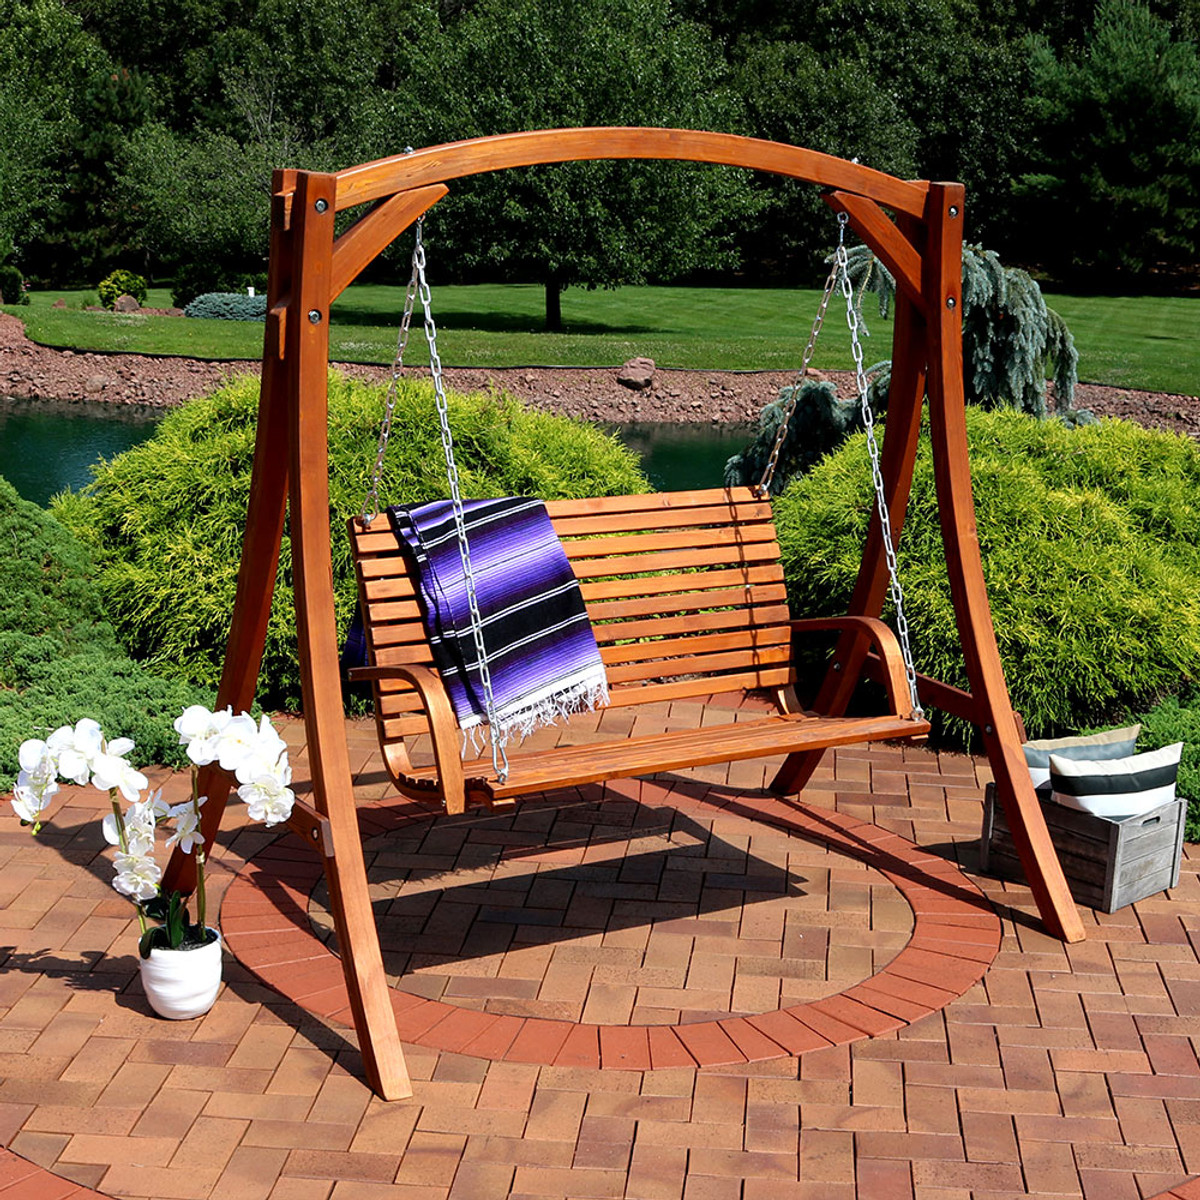 ideas deck metal chains material size patio porch full and wicker wooden outdoor furniture swings swing teak natural sturdy wood of paint color